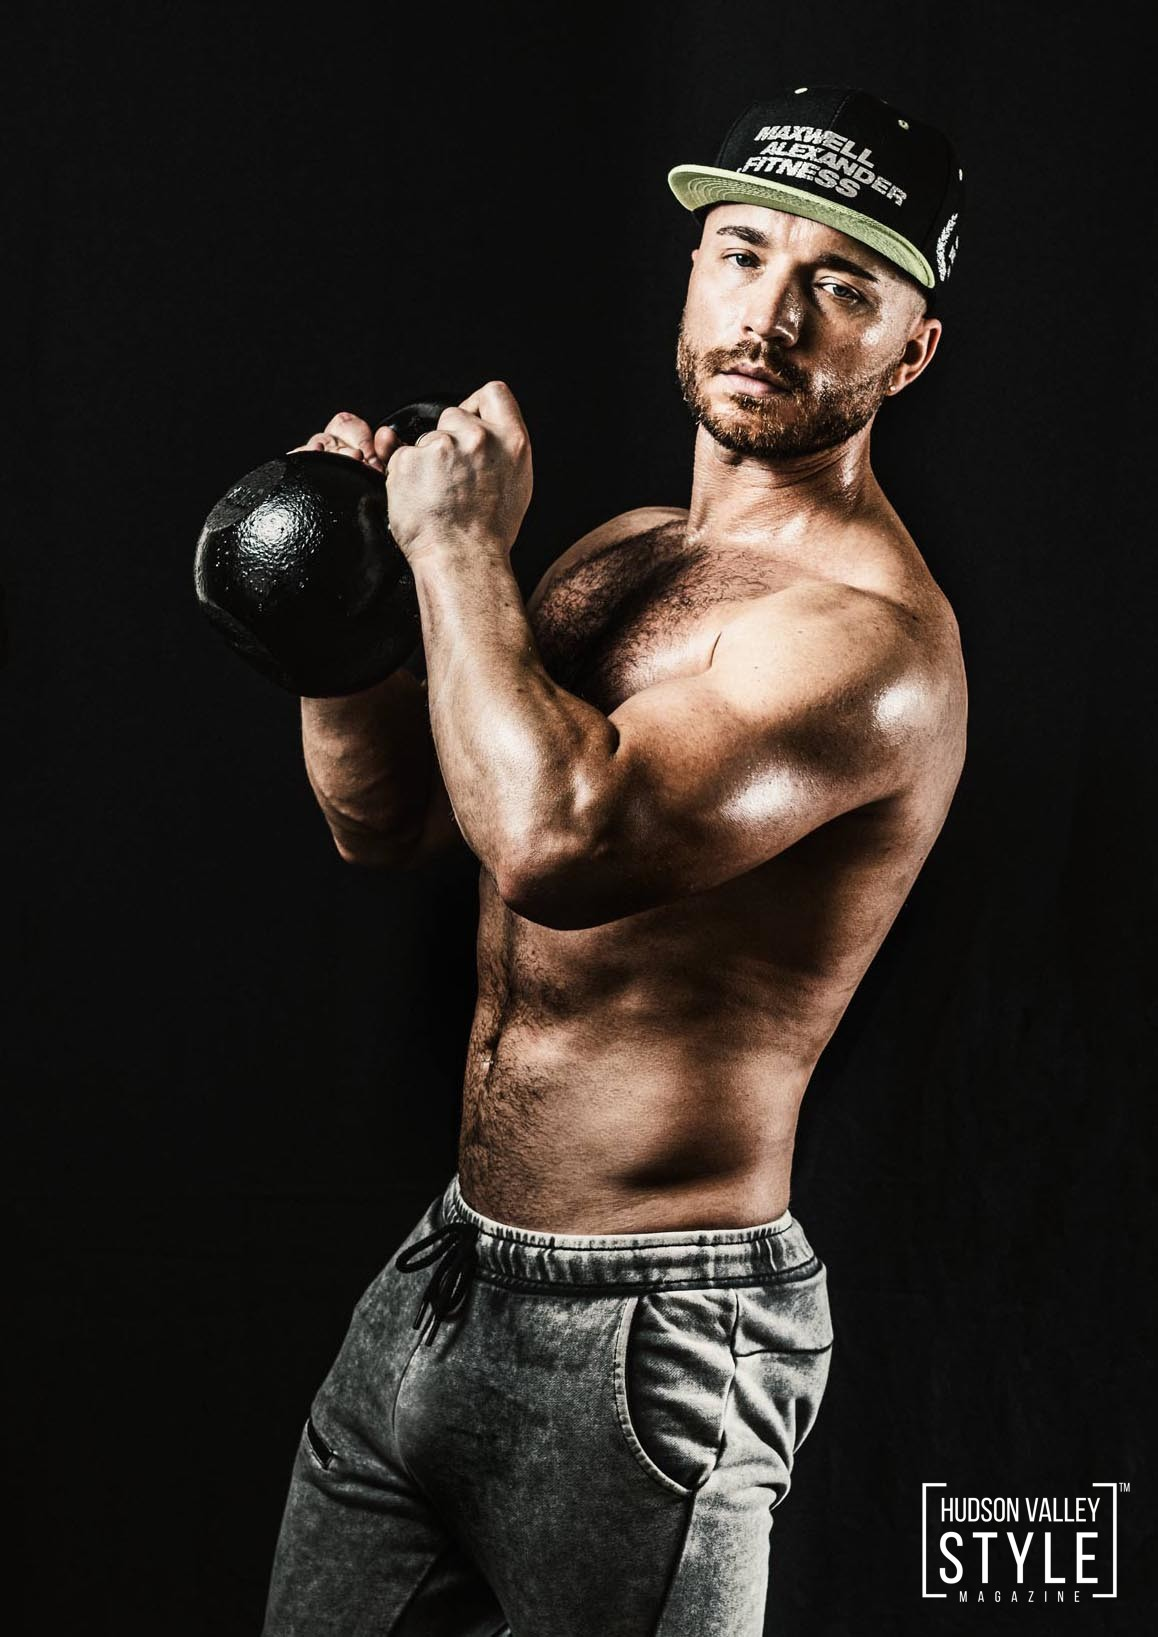 Get fit while building your body – Fitness through Bodybuilding by Certified Fitness Trainer & Bodybuilding Coach Maxwell Alexander